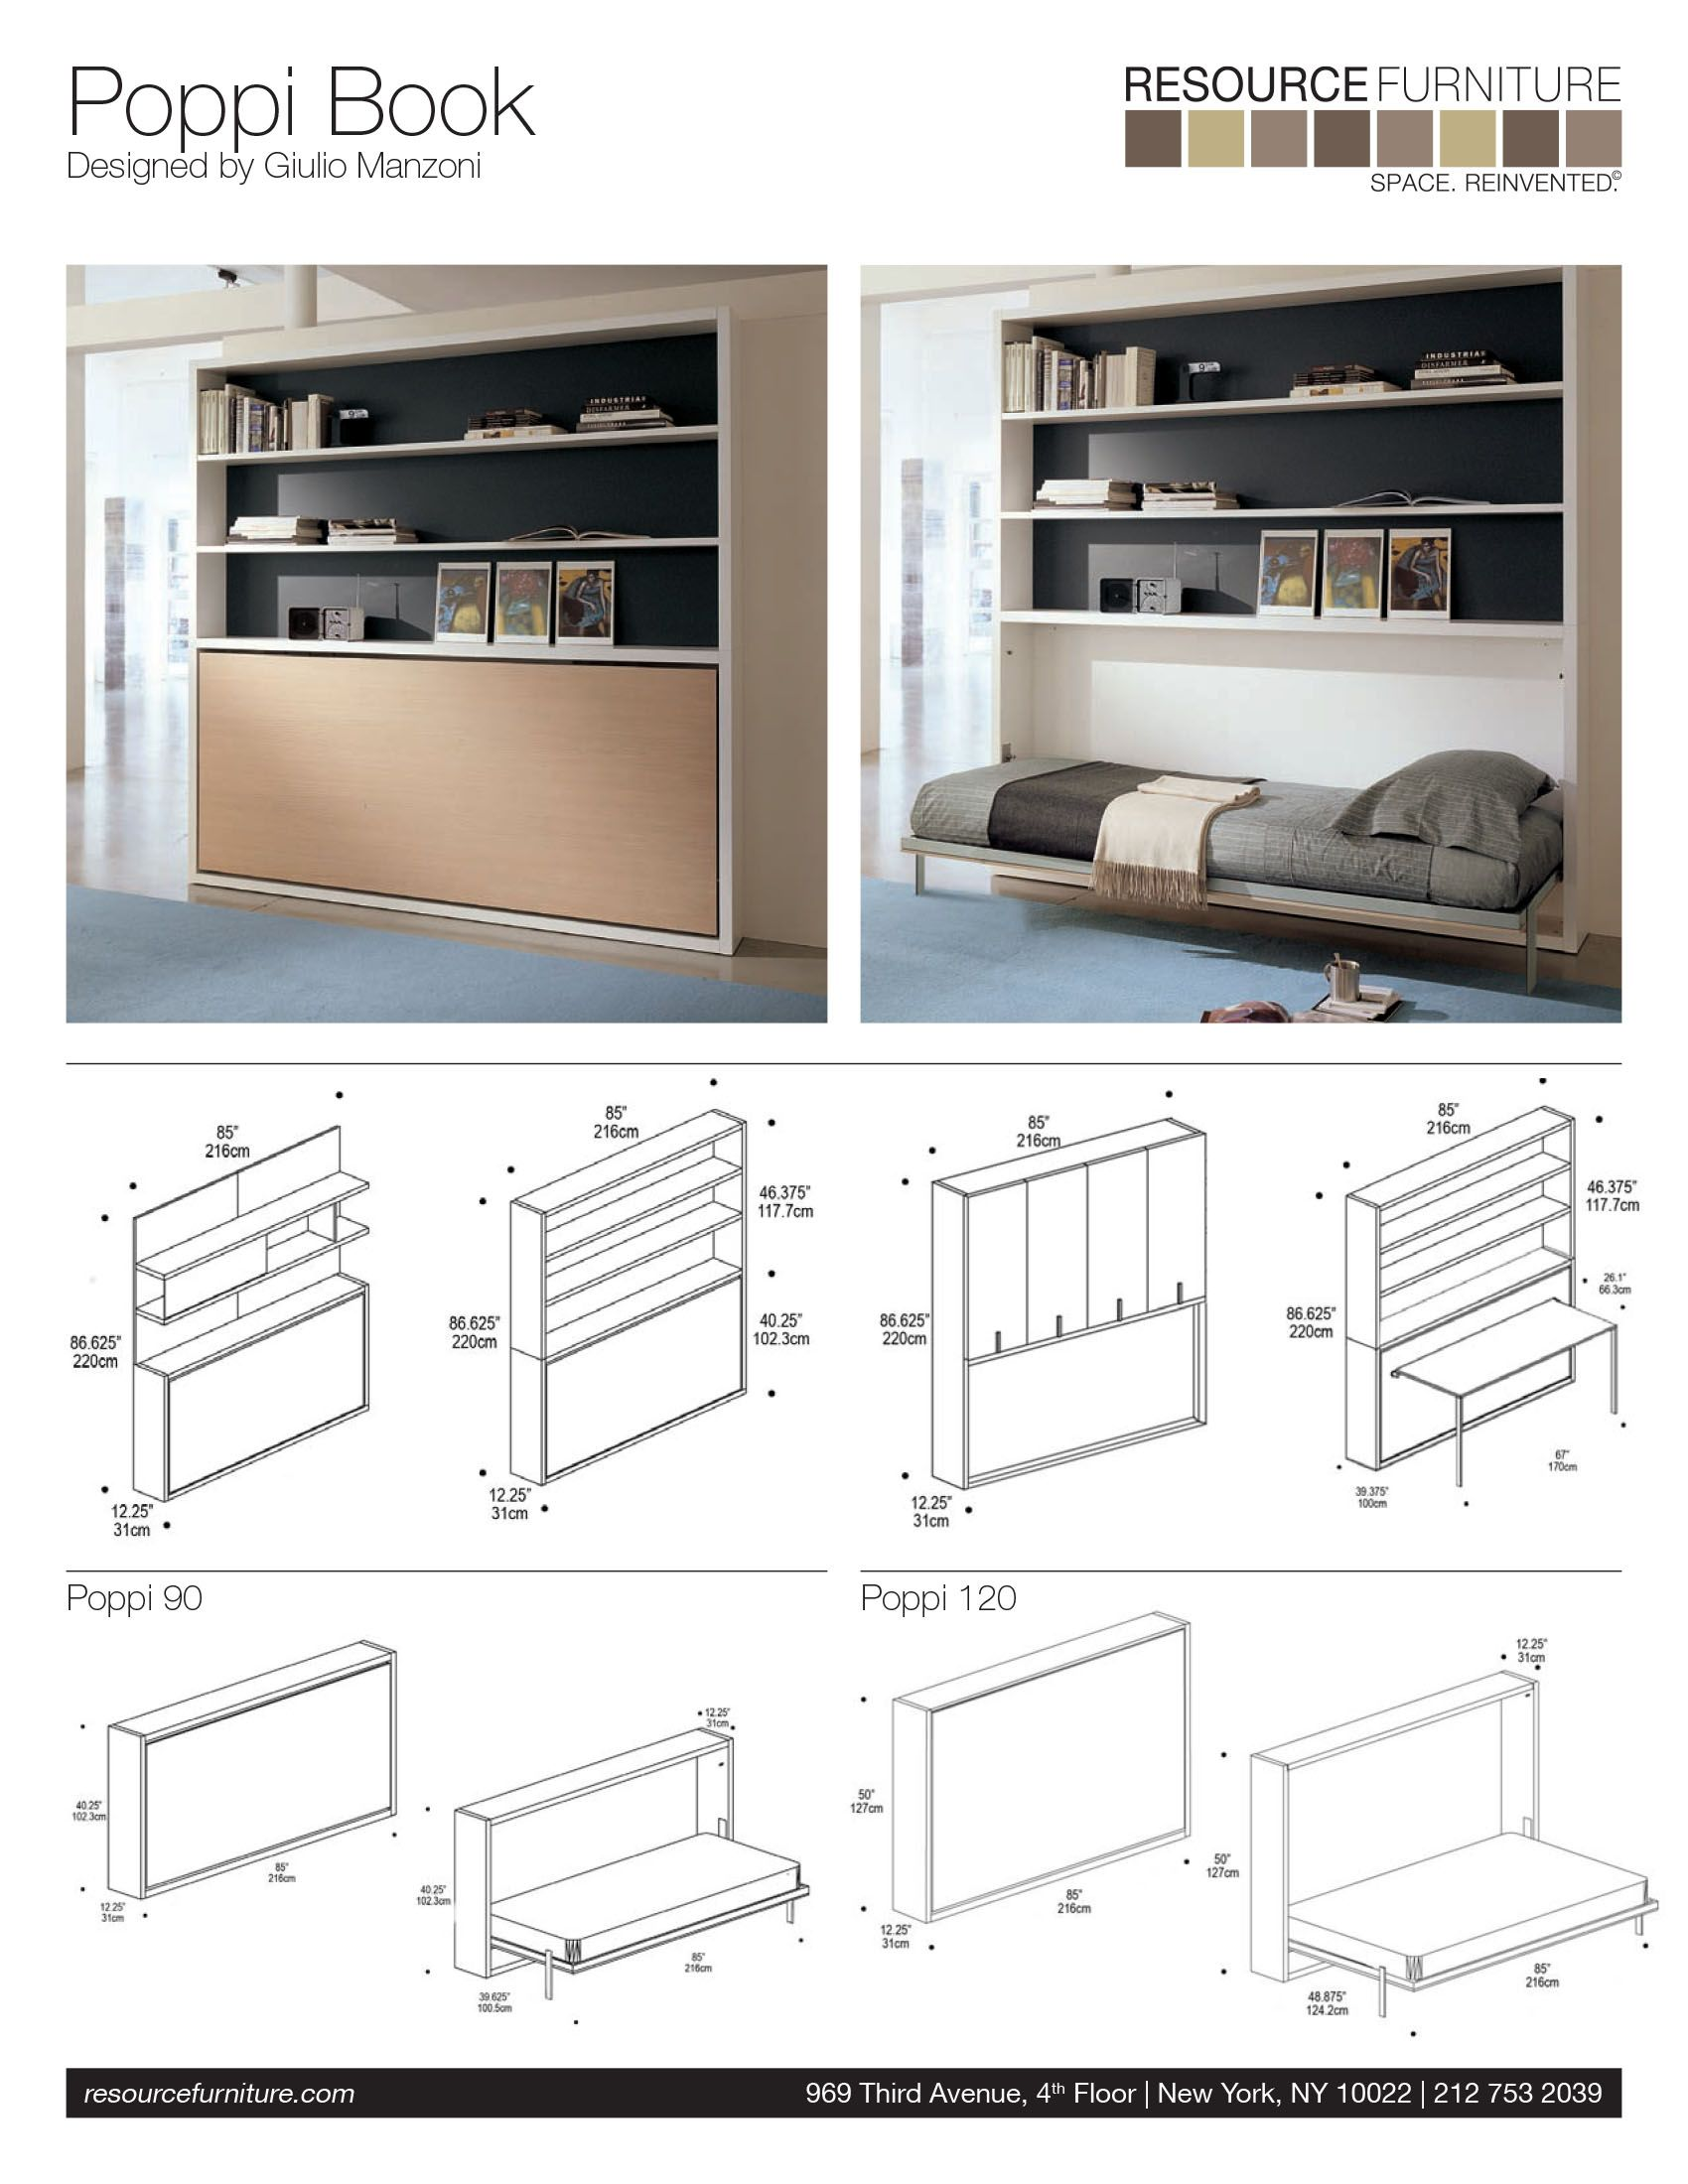 Poppi Book Resource Furniture Wall Beds & Murphy Beds